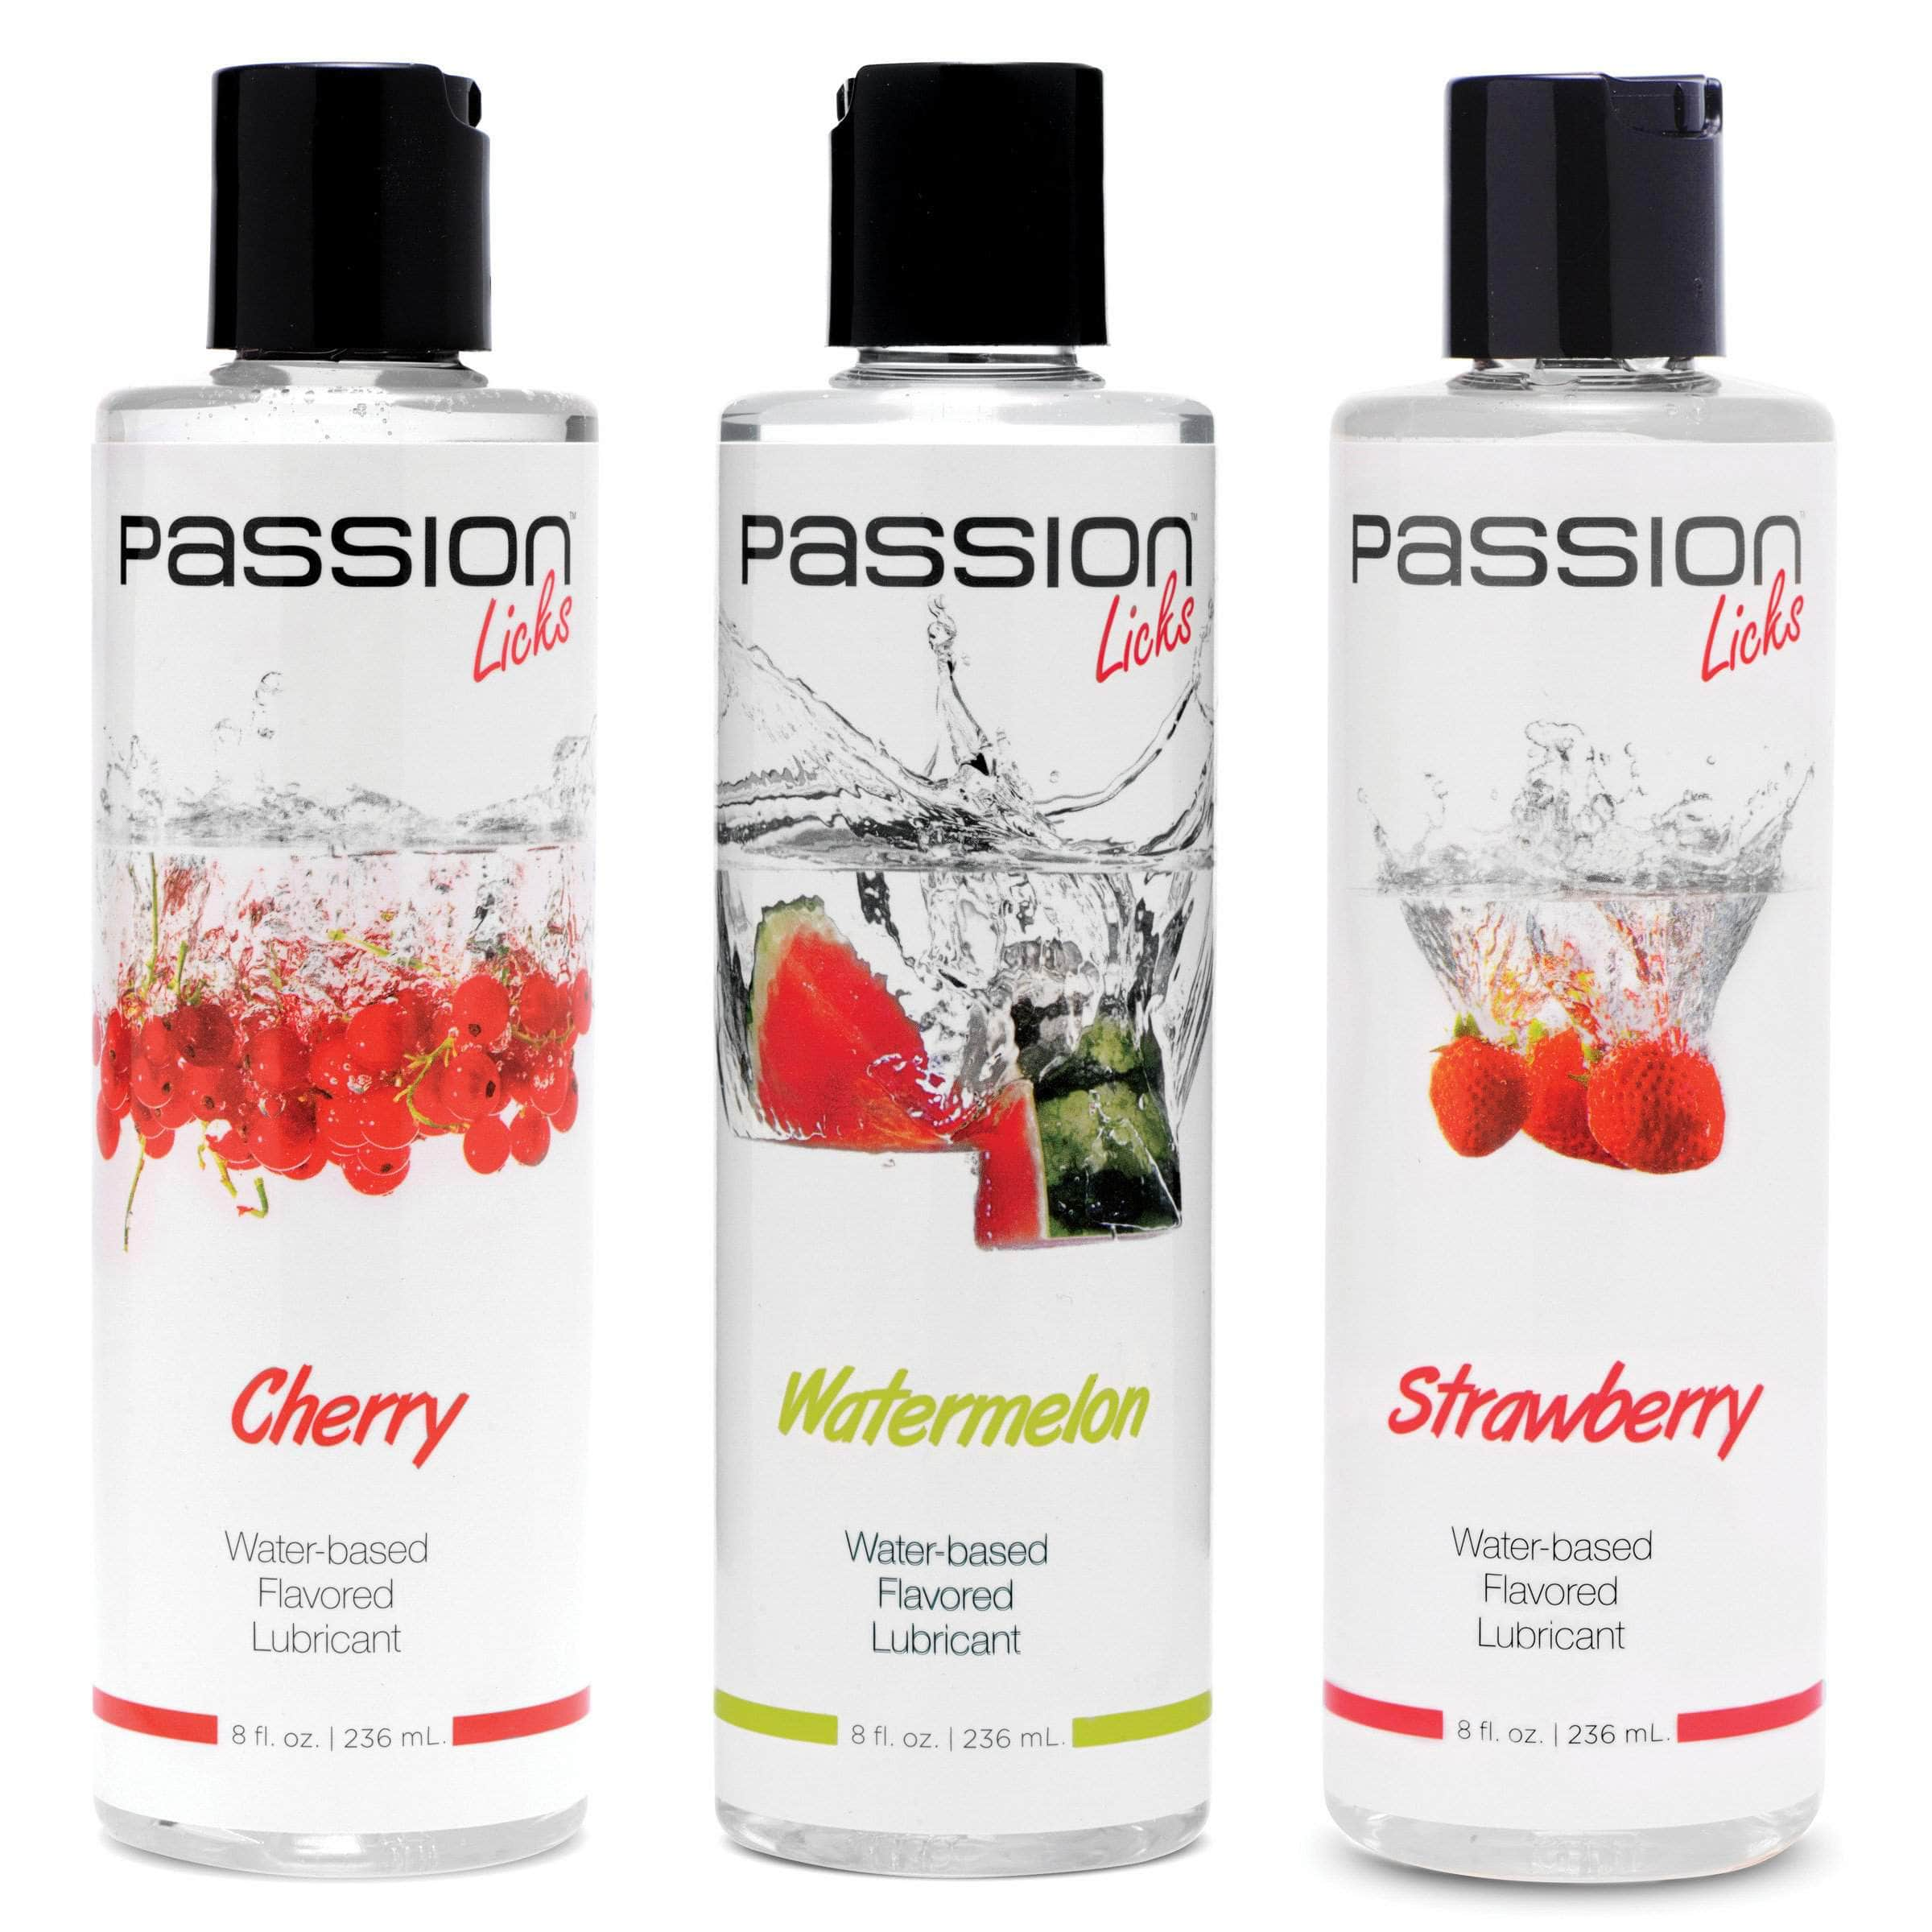 Passion Licks 3 Flavor Kit